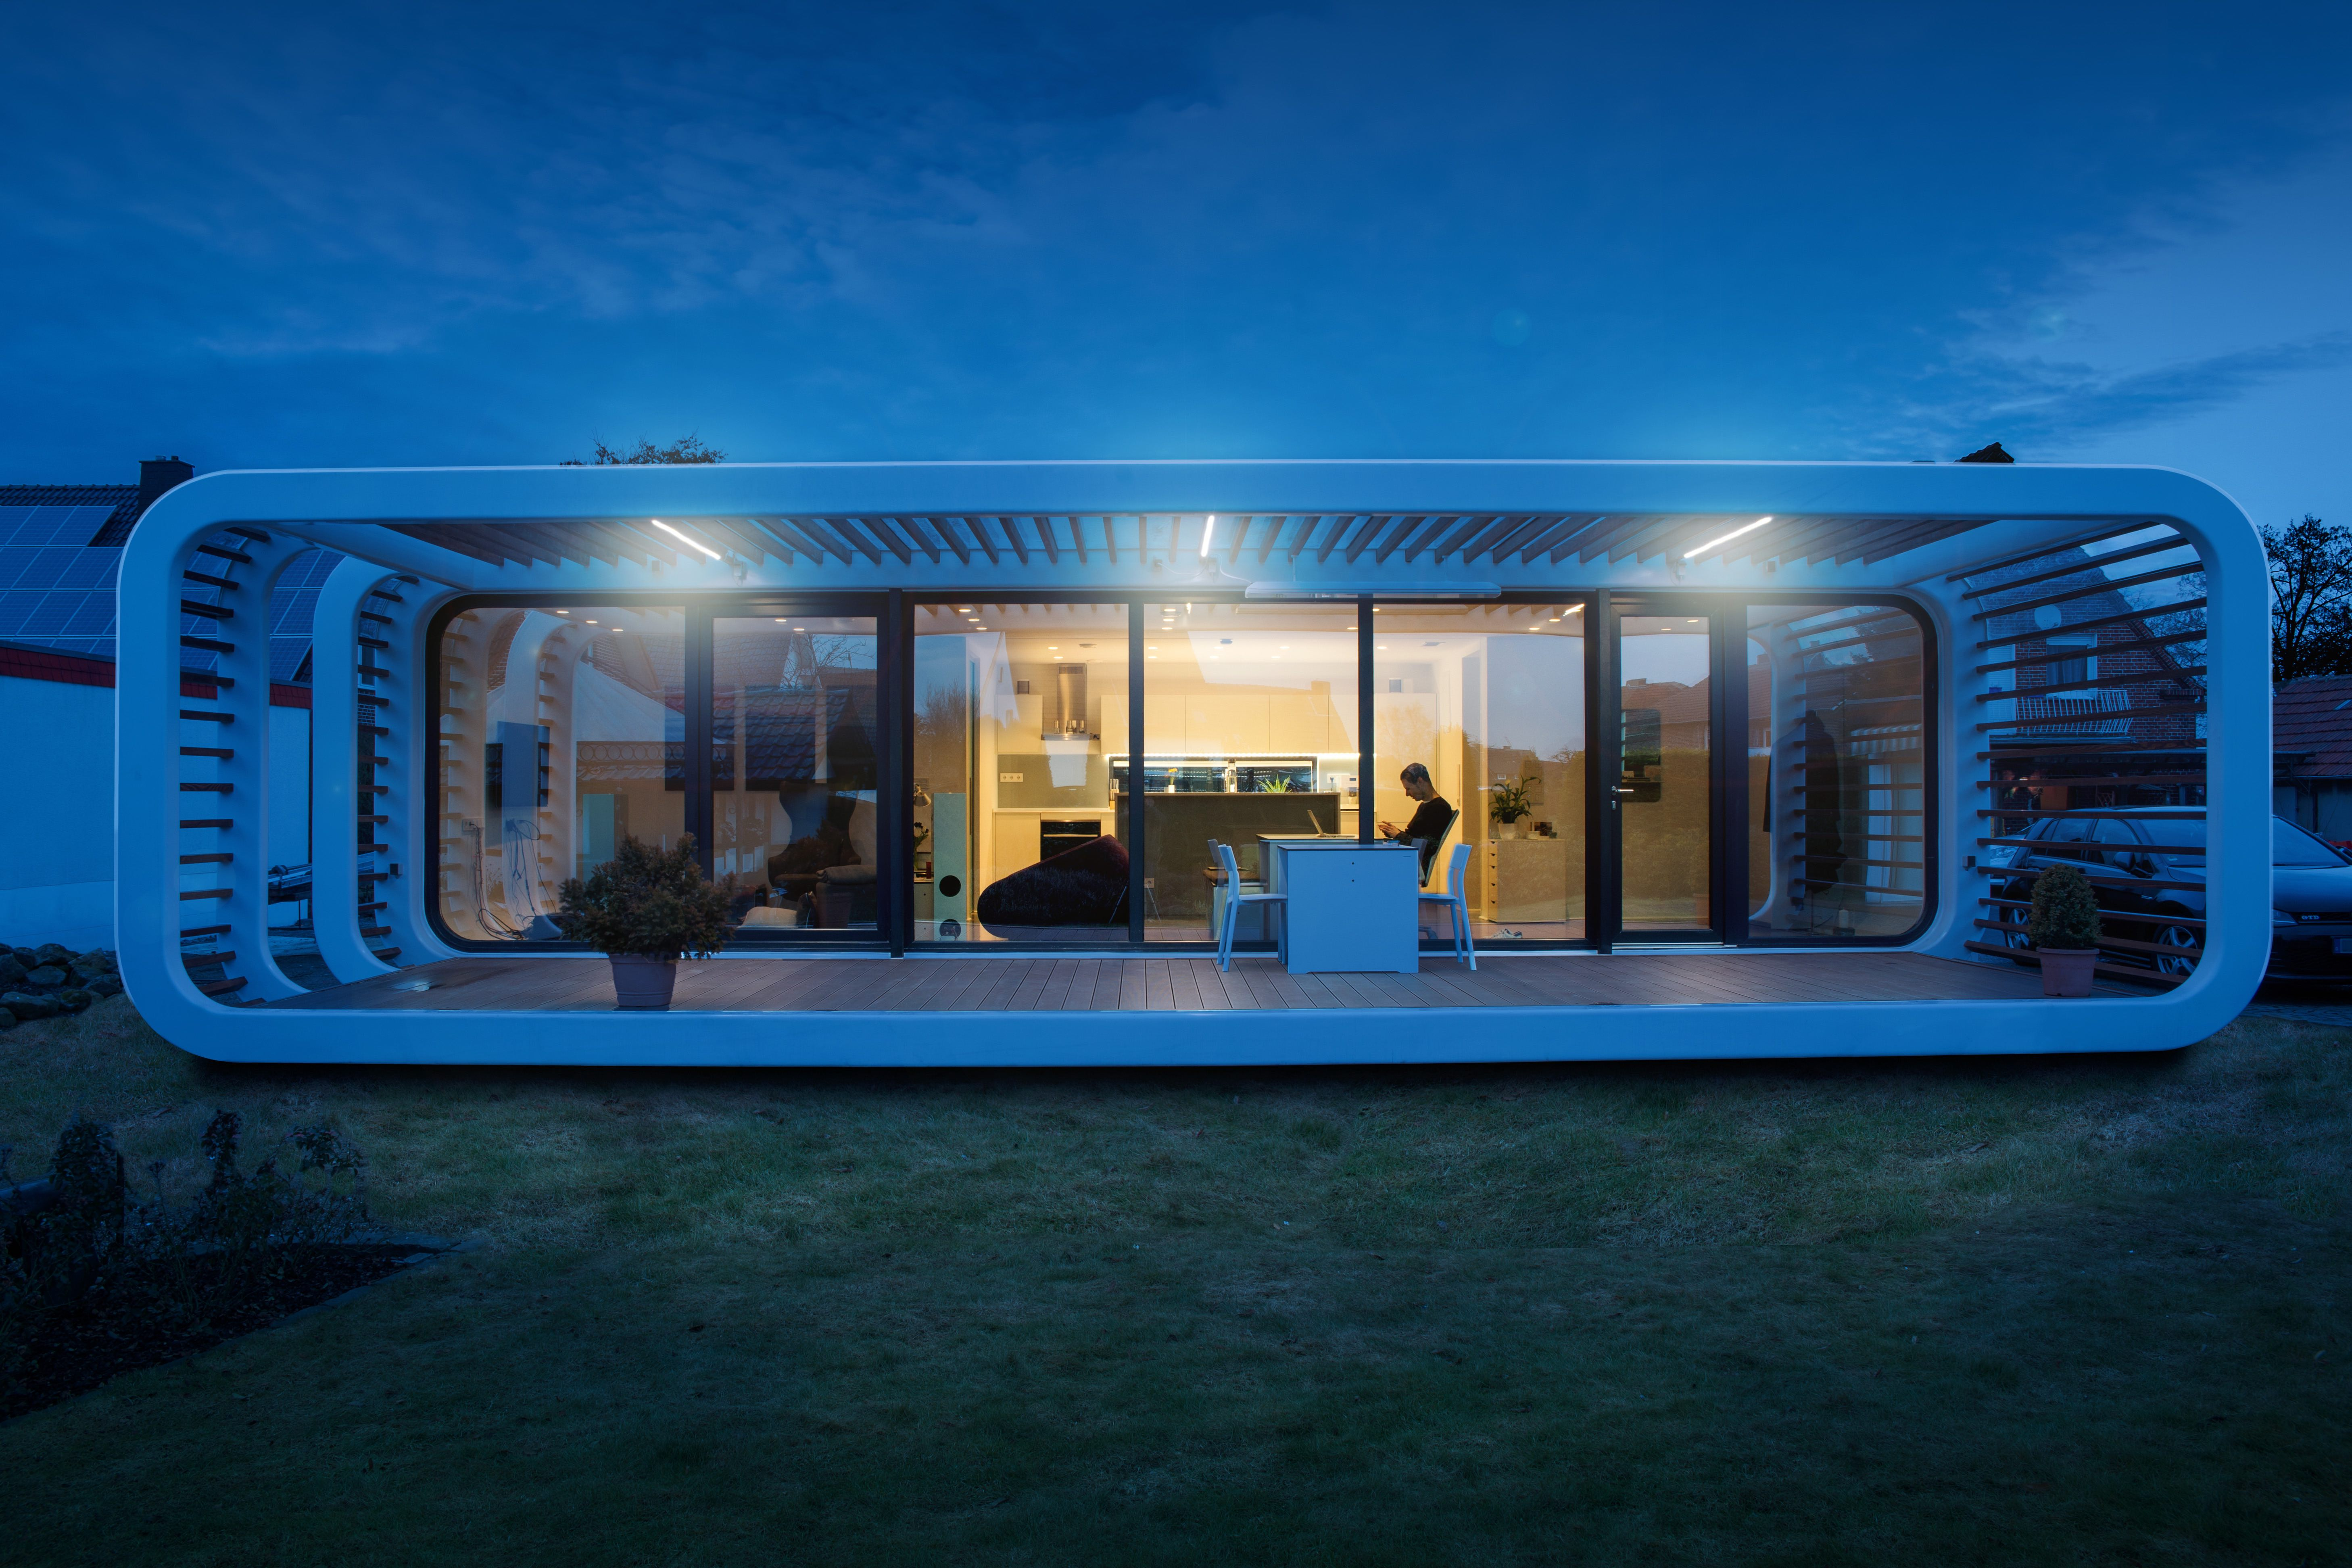 These Stunning Home Tours Will Provide Serious Design ... on cardboard box home designs, container home designs, carriage home designs, train car home designs, rail car dock designs,